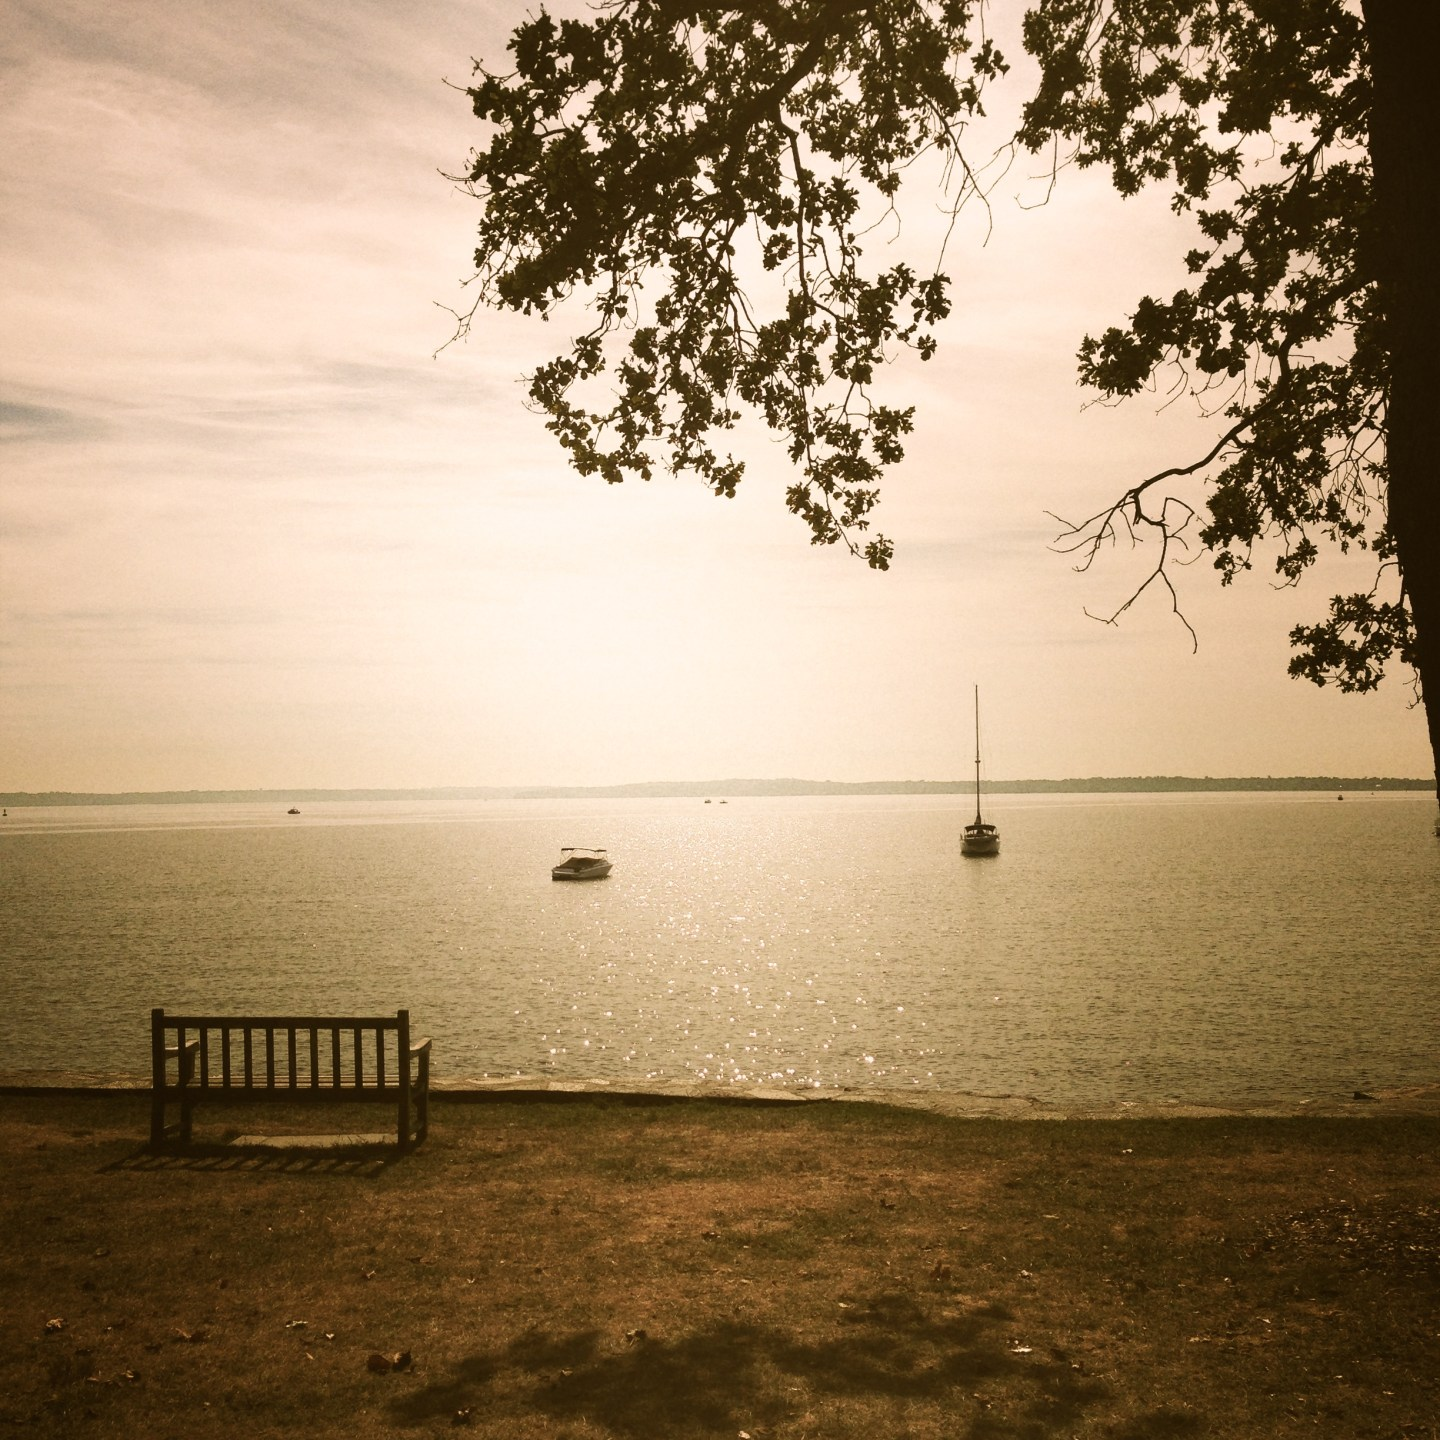 Park bench with a view of the sounds in Larchmont Manor Park.